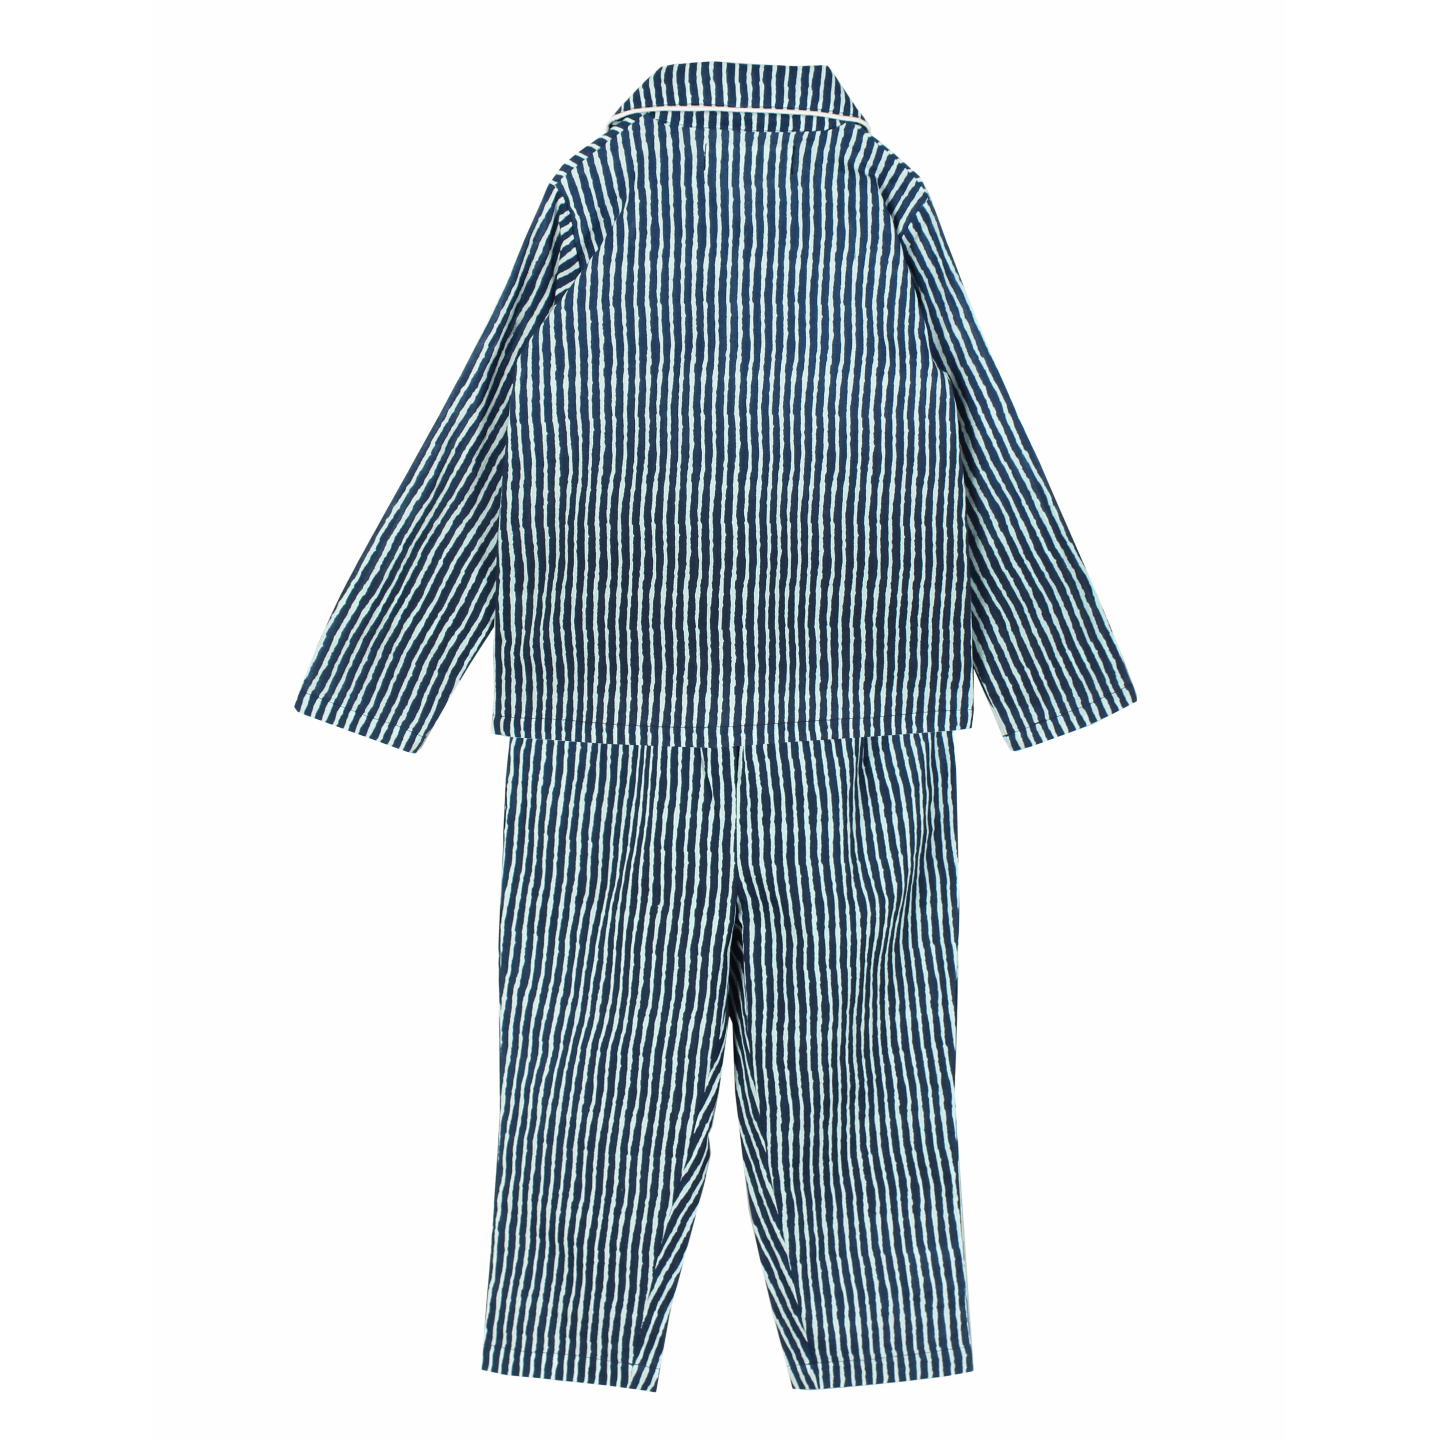 Indigo Stripe Night Suit